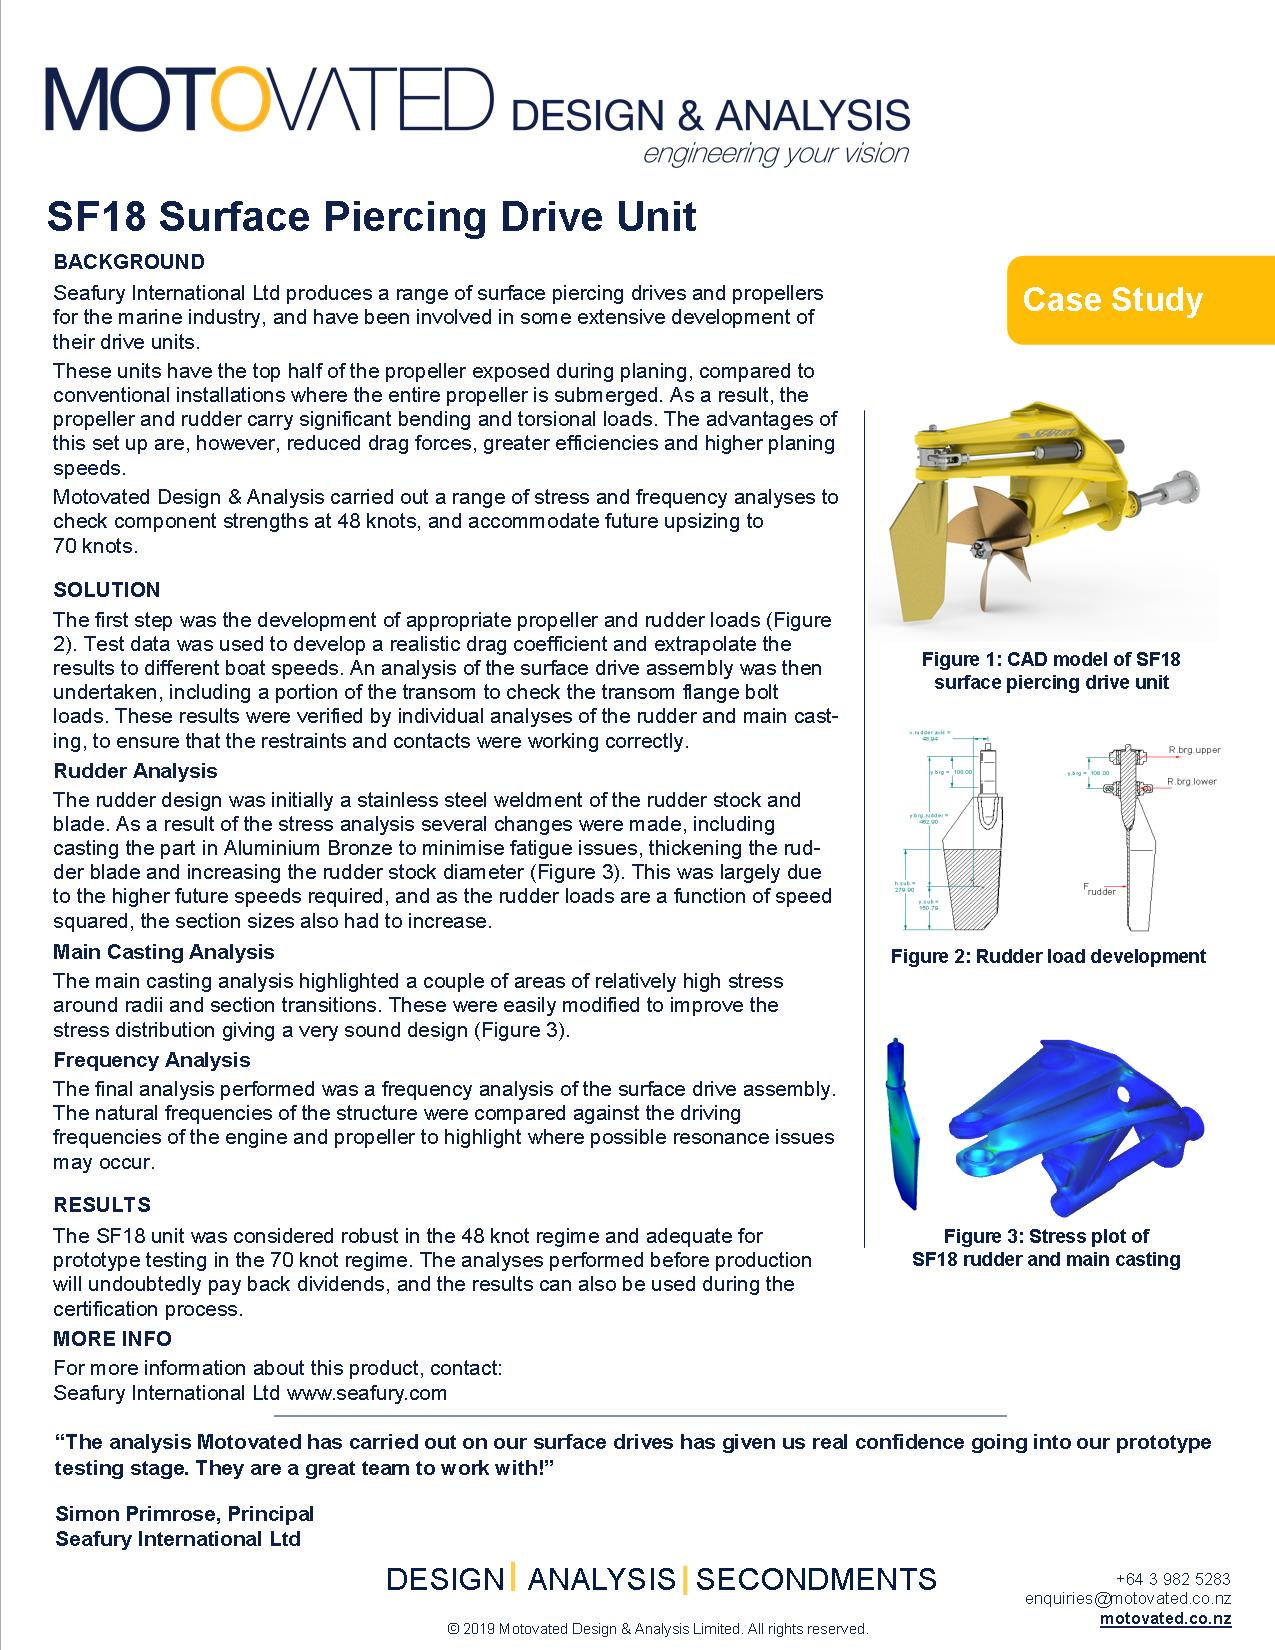 Motovated SF18 Surface Piercing Drive Unit Case Study